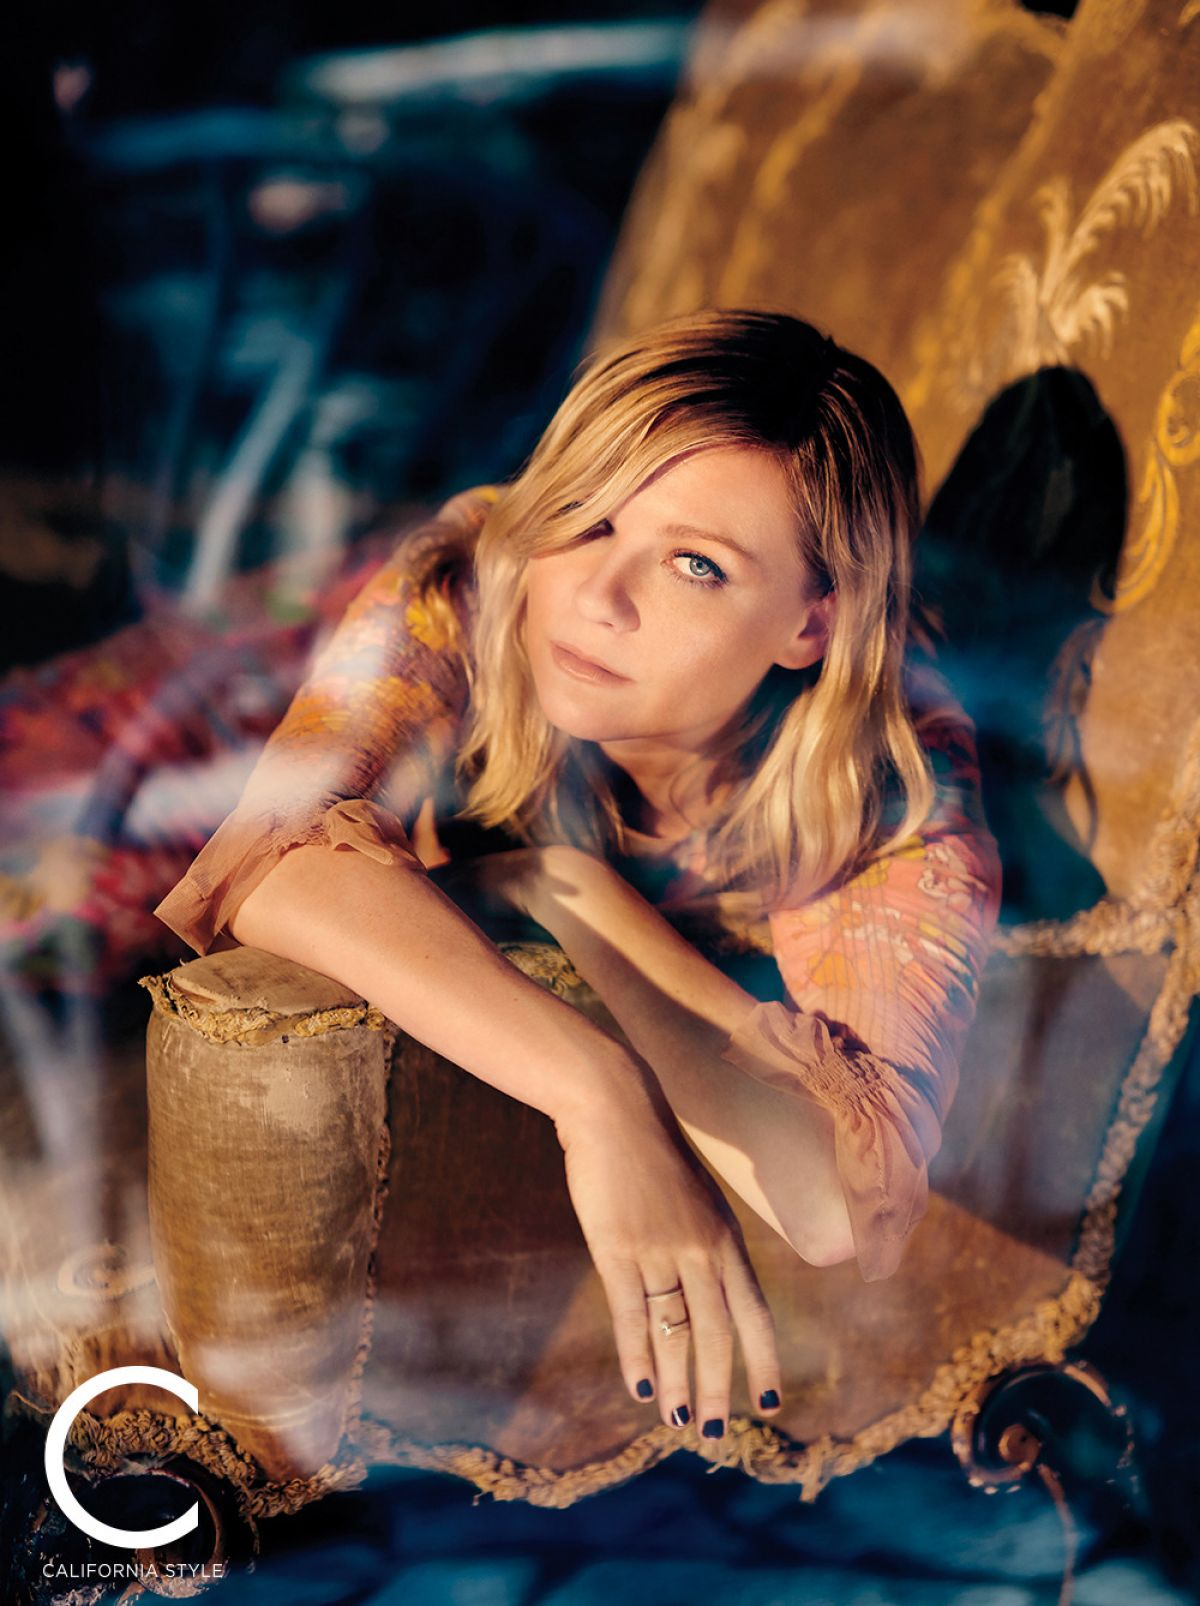 KIRSTEN DUNST foe C California Style Magazine, October ...